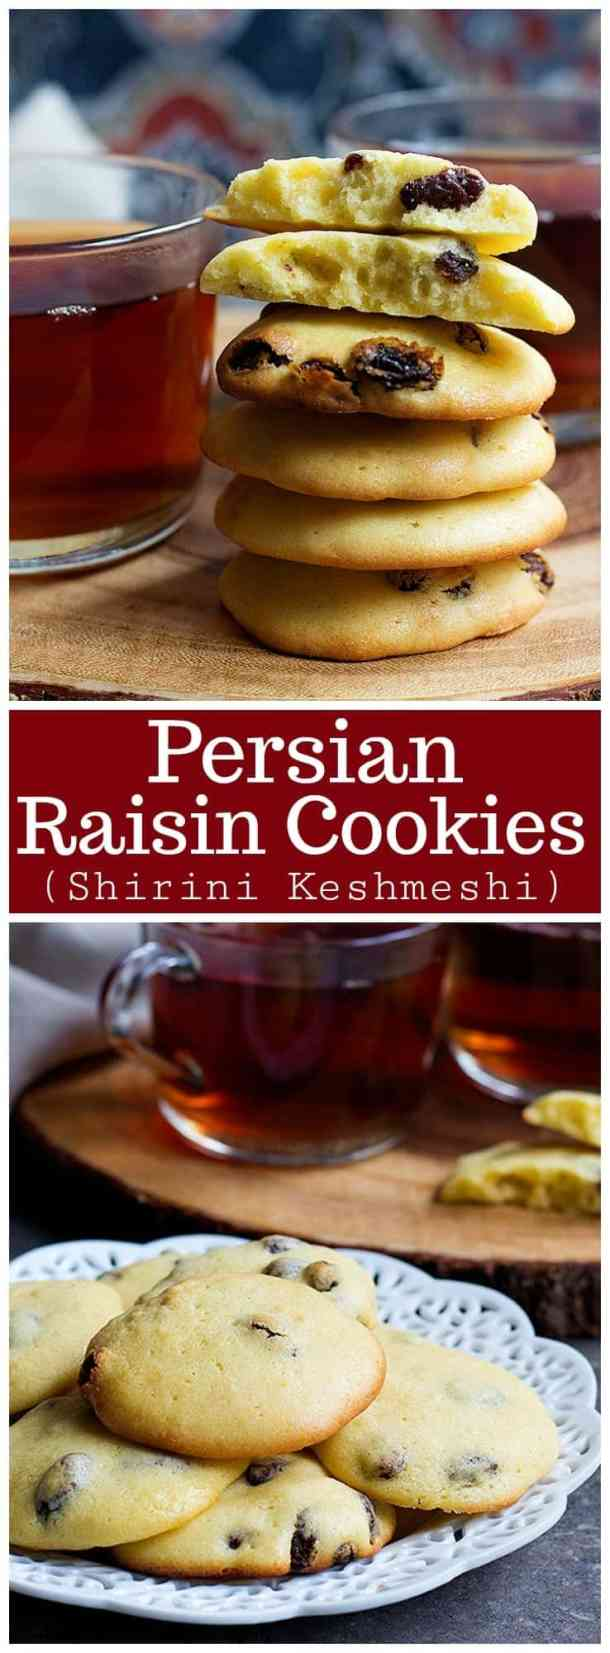 Raisin cookies made Persian style! These delicious and delicate cookies are perfect for the Persian New Year or any other time of the year. They're crunchy on the edges and soft in the center, perfect for a snack or dessert.